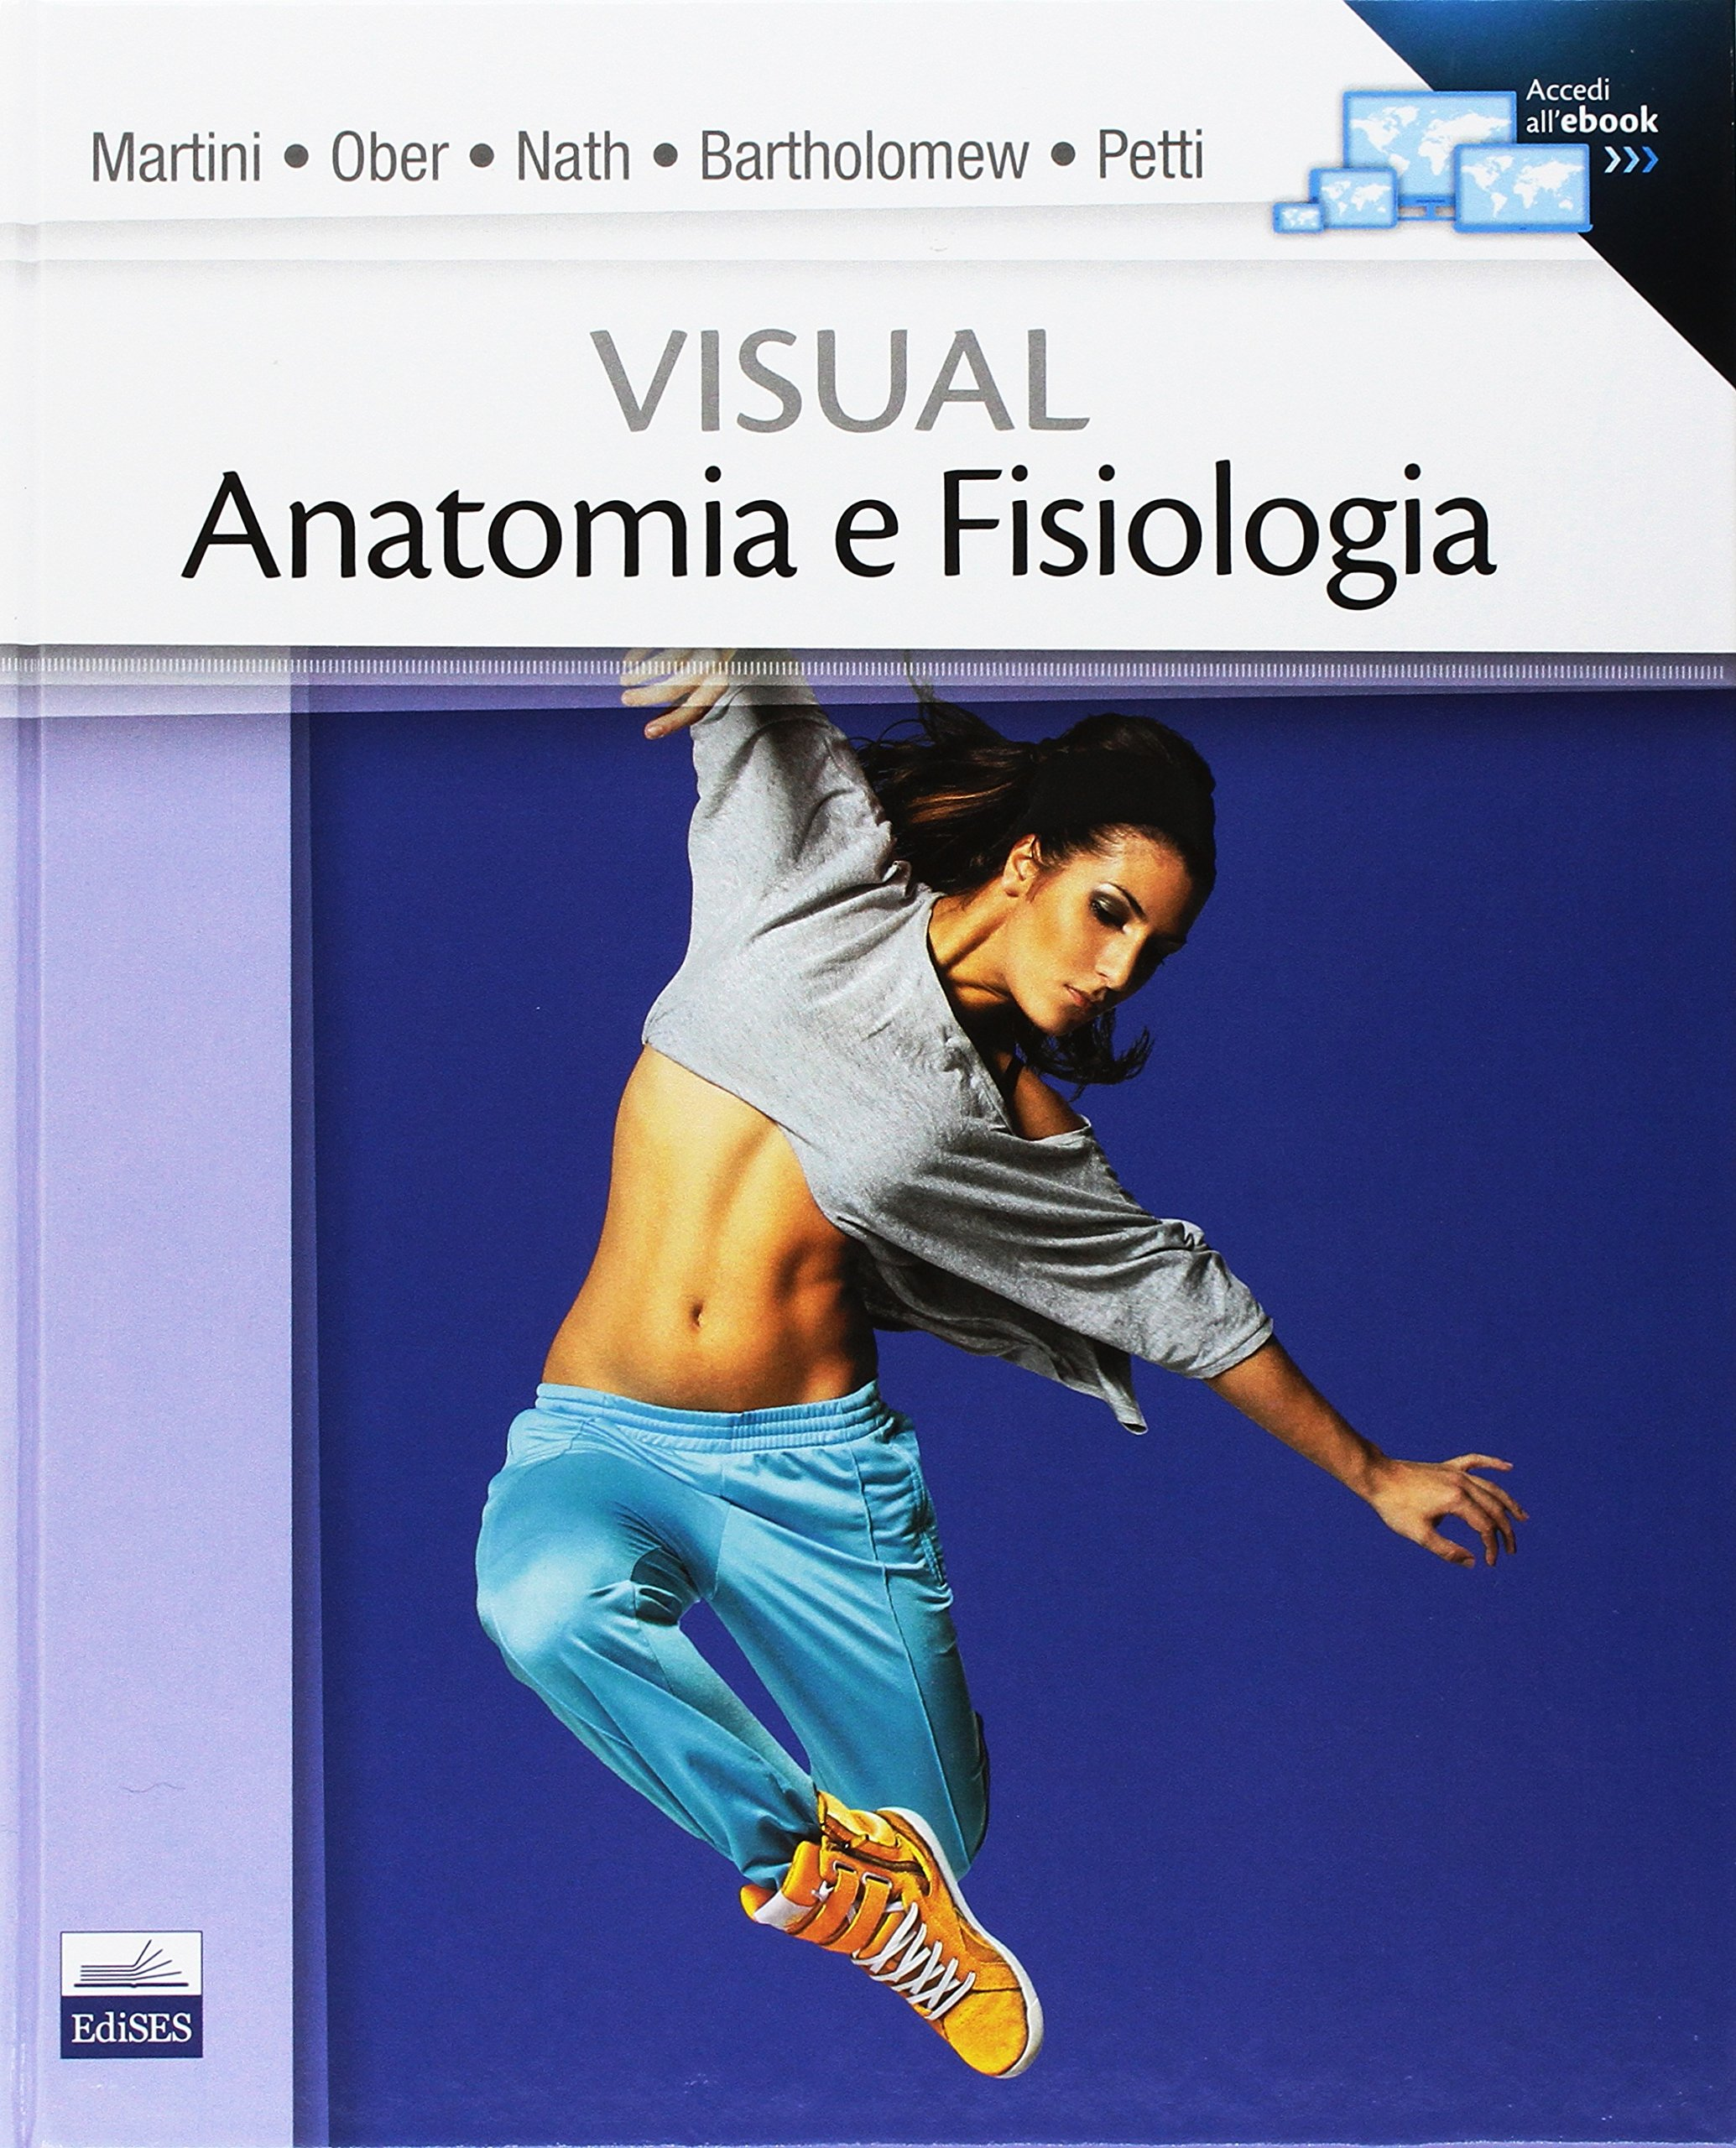 Visual anatomia e fisiologia: Amazon.es: F. Martini, W. Ober, J ...